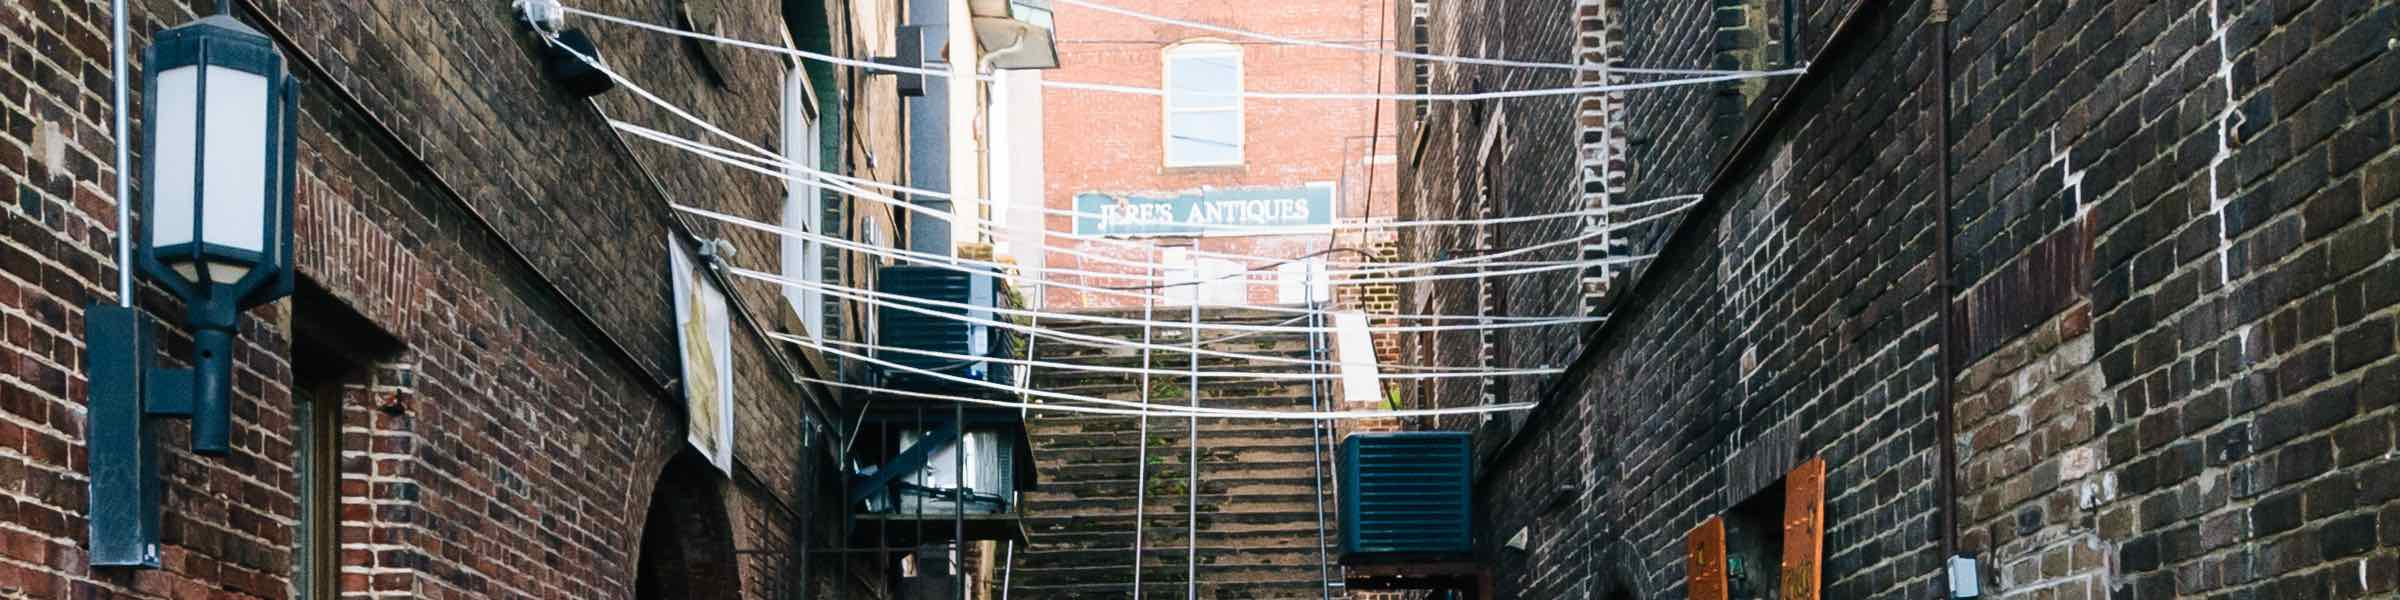 A Savannah antiques store, as seen from one of the narrow alleys leading down to River Street.